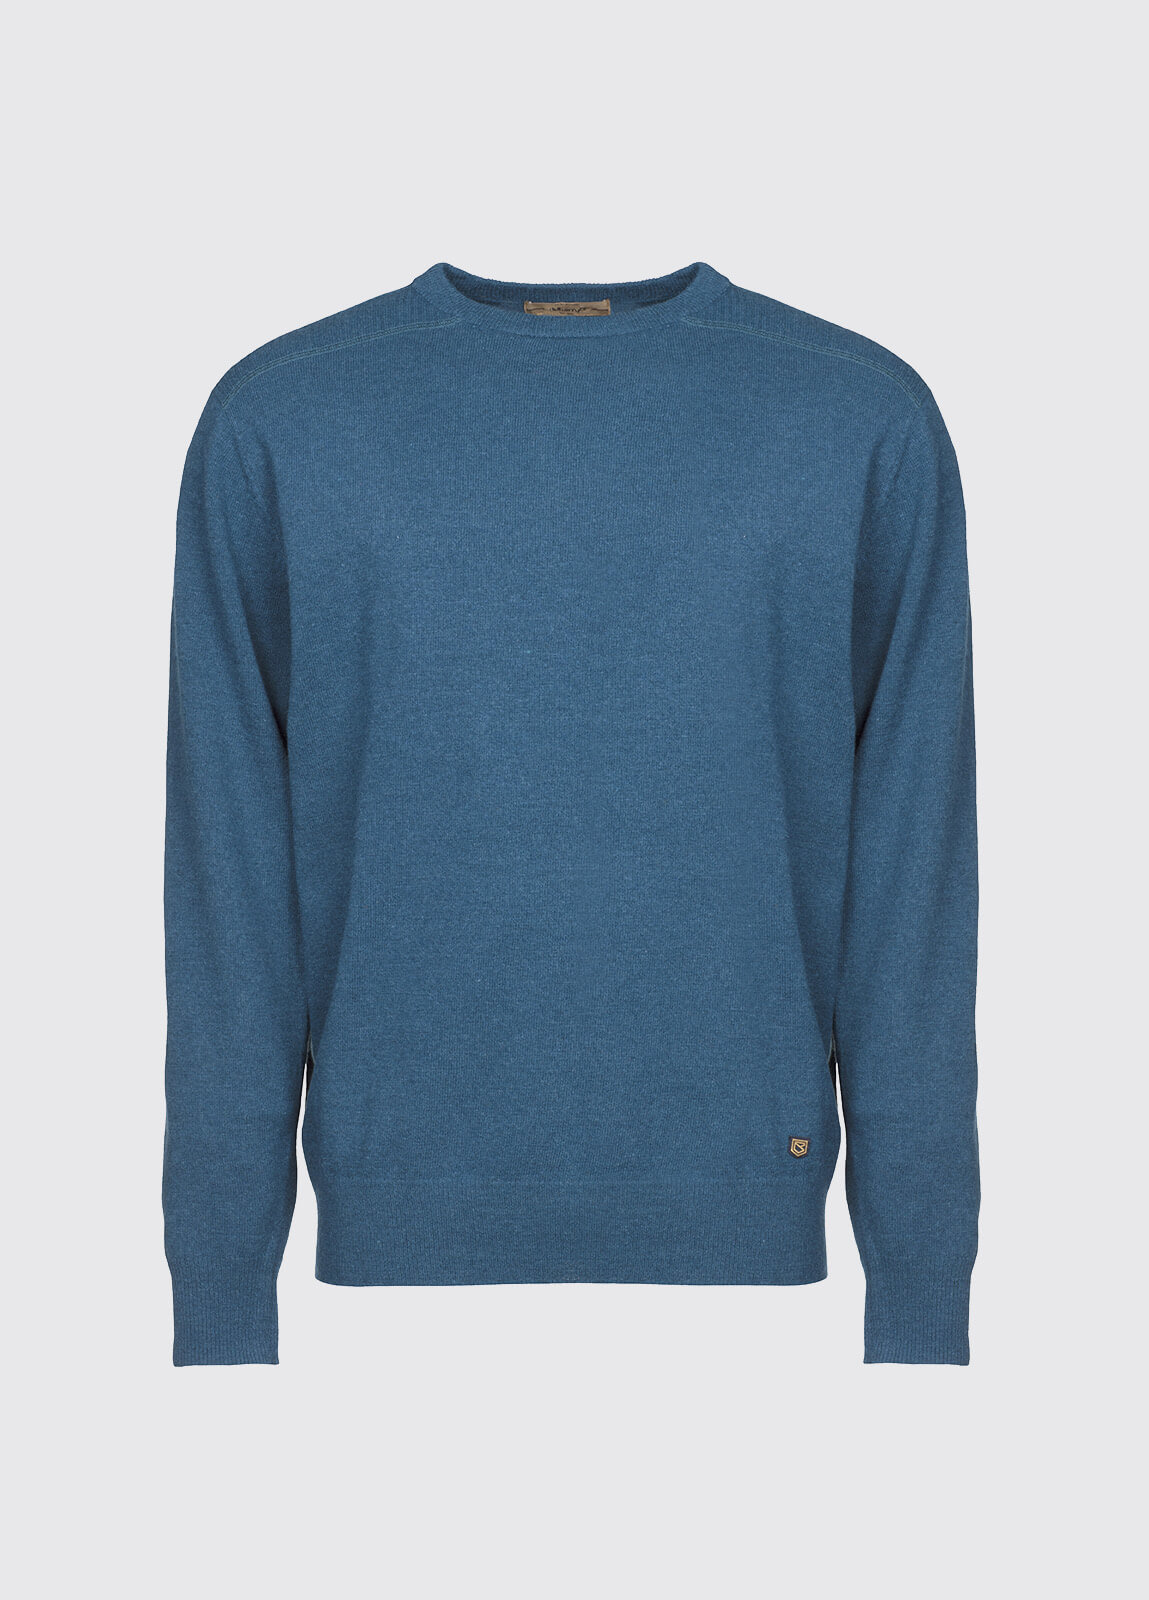 Maguire Men's Sweater - Royal Blue